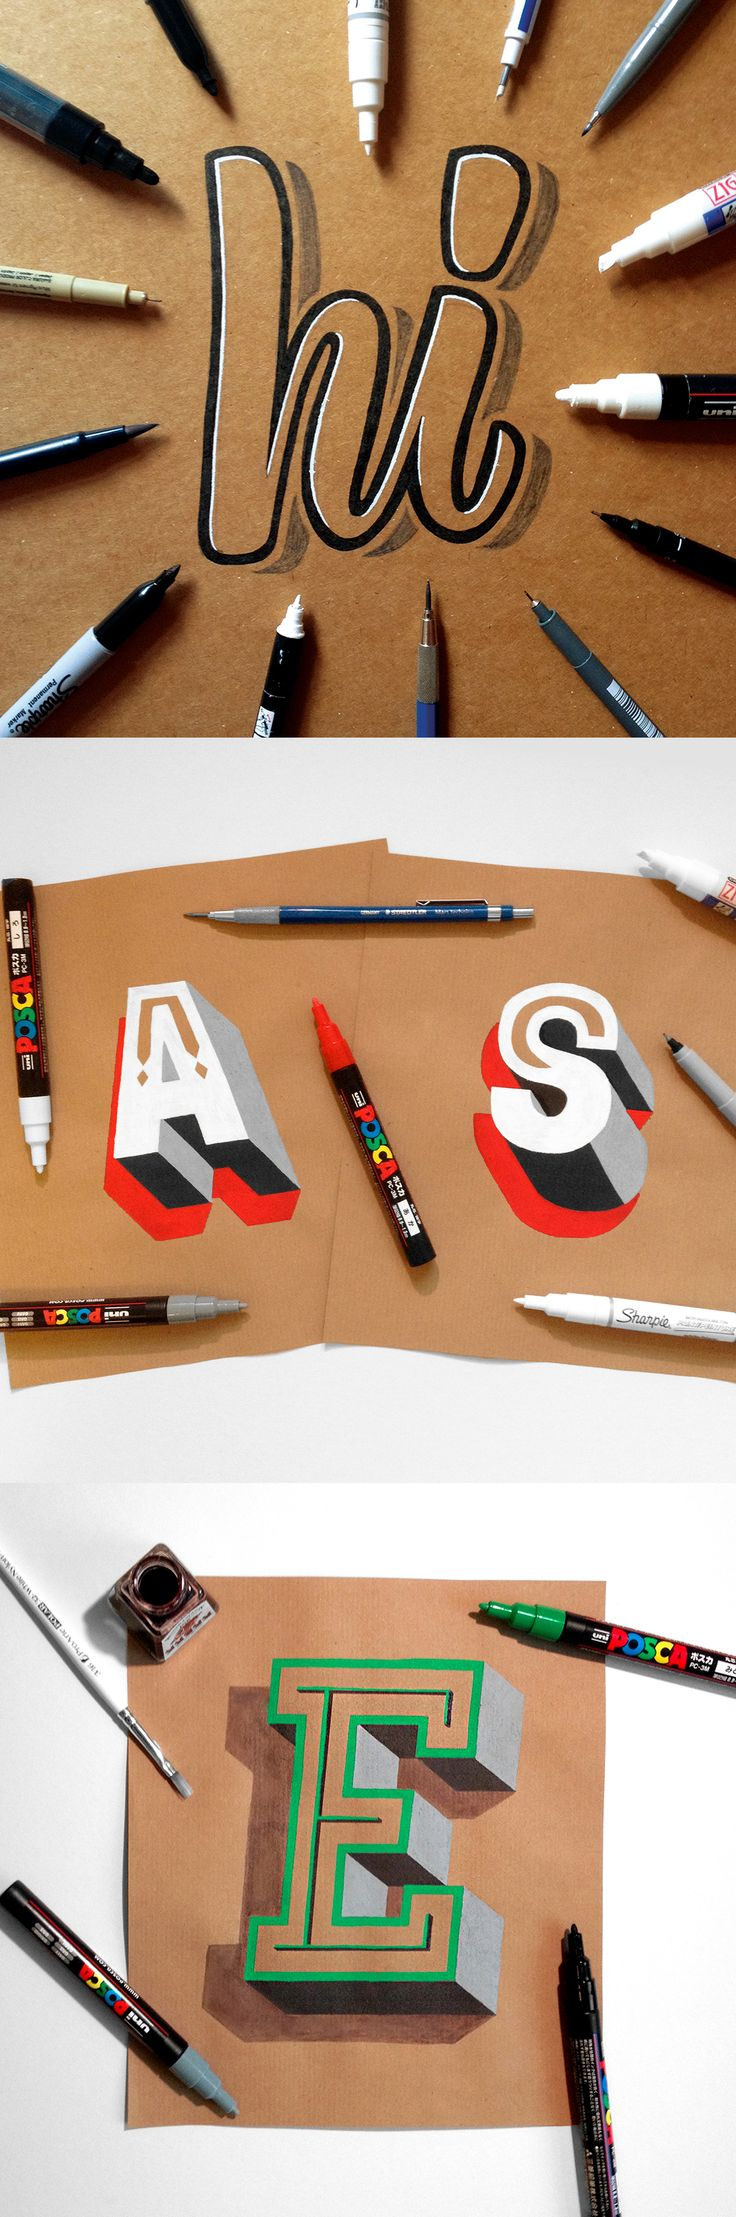 A collection of hand drawn typography on kraft paper by James Lewis and Ligature Collective.  Keep your fonts collected with Suitcase Fusion. Try it free for 30 days: http://www.extensis.com/font-management/suitcase-fusion/